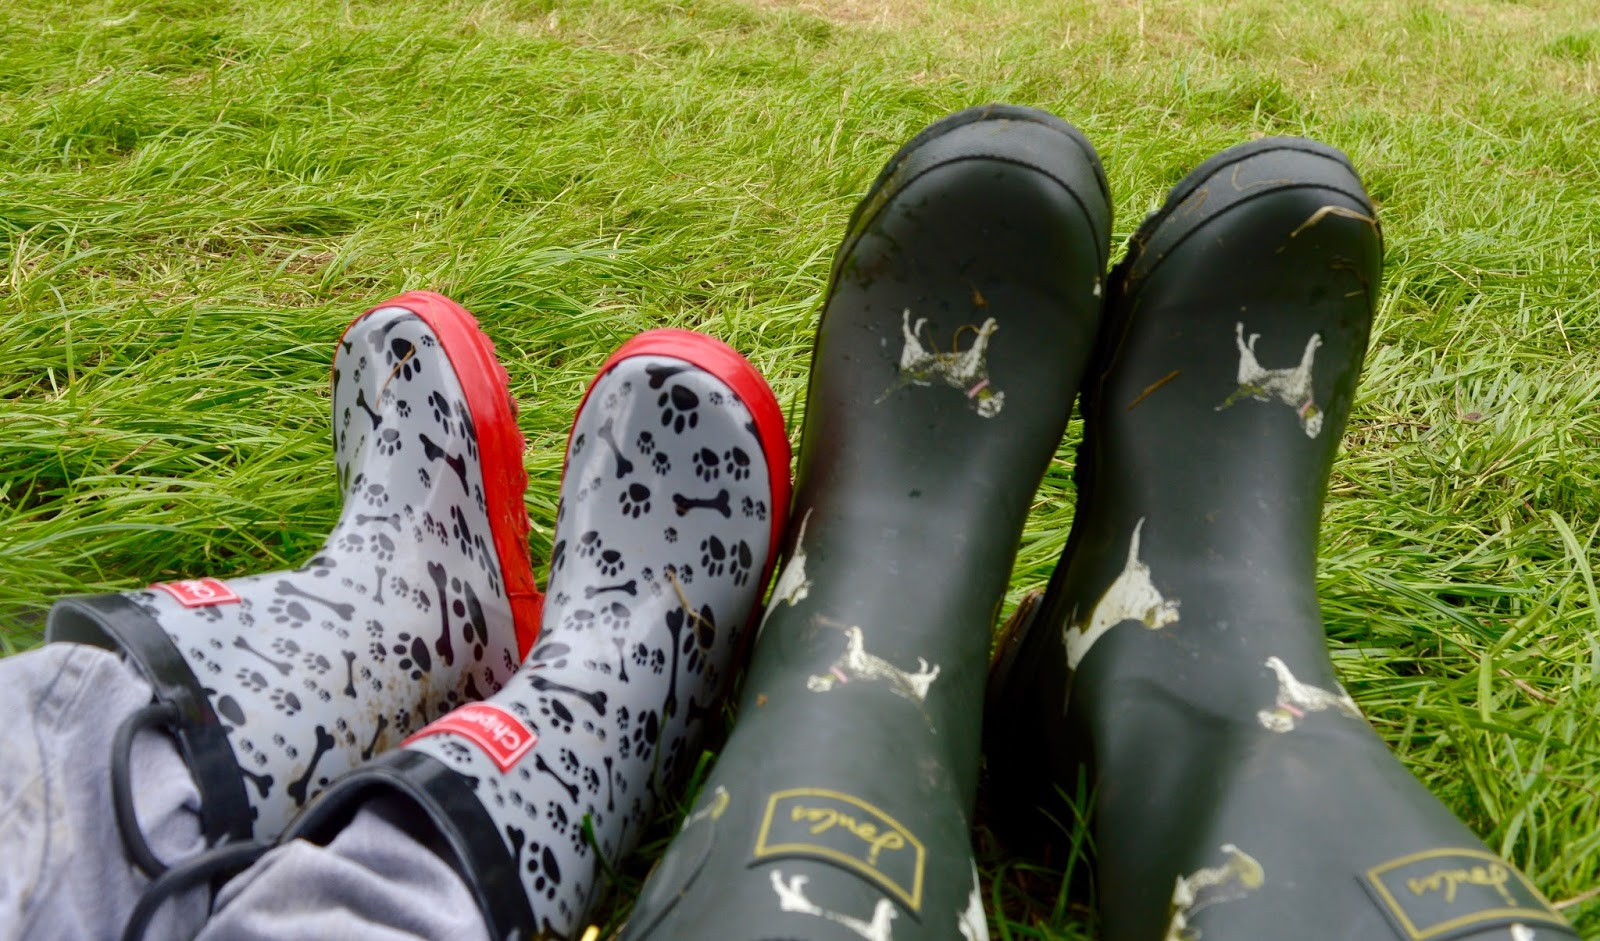 We're heading to Festival on the Wall in Northumberland and the Just So Festival in Cheshire this year. Here are our 10 Essential Items to pack when visiting a festival with kids. - wellies